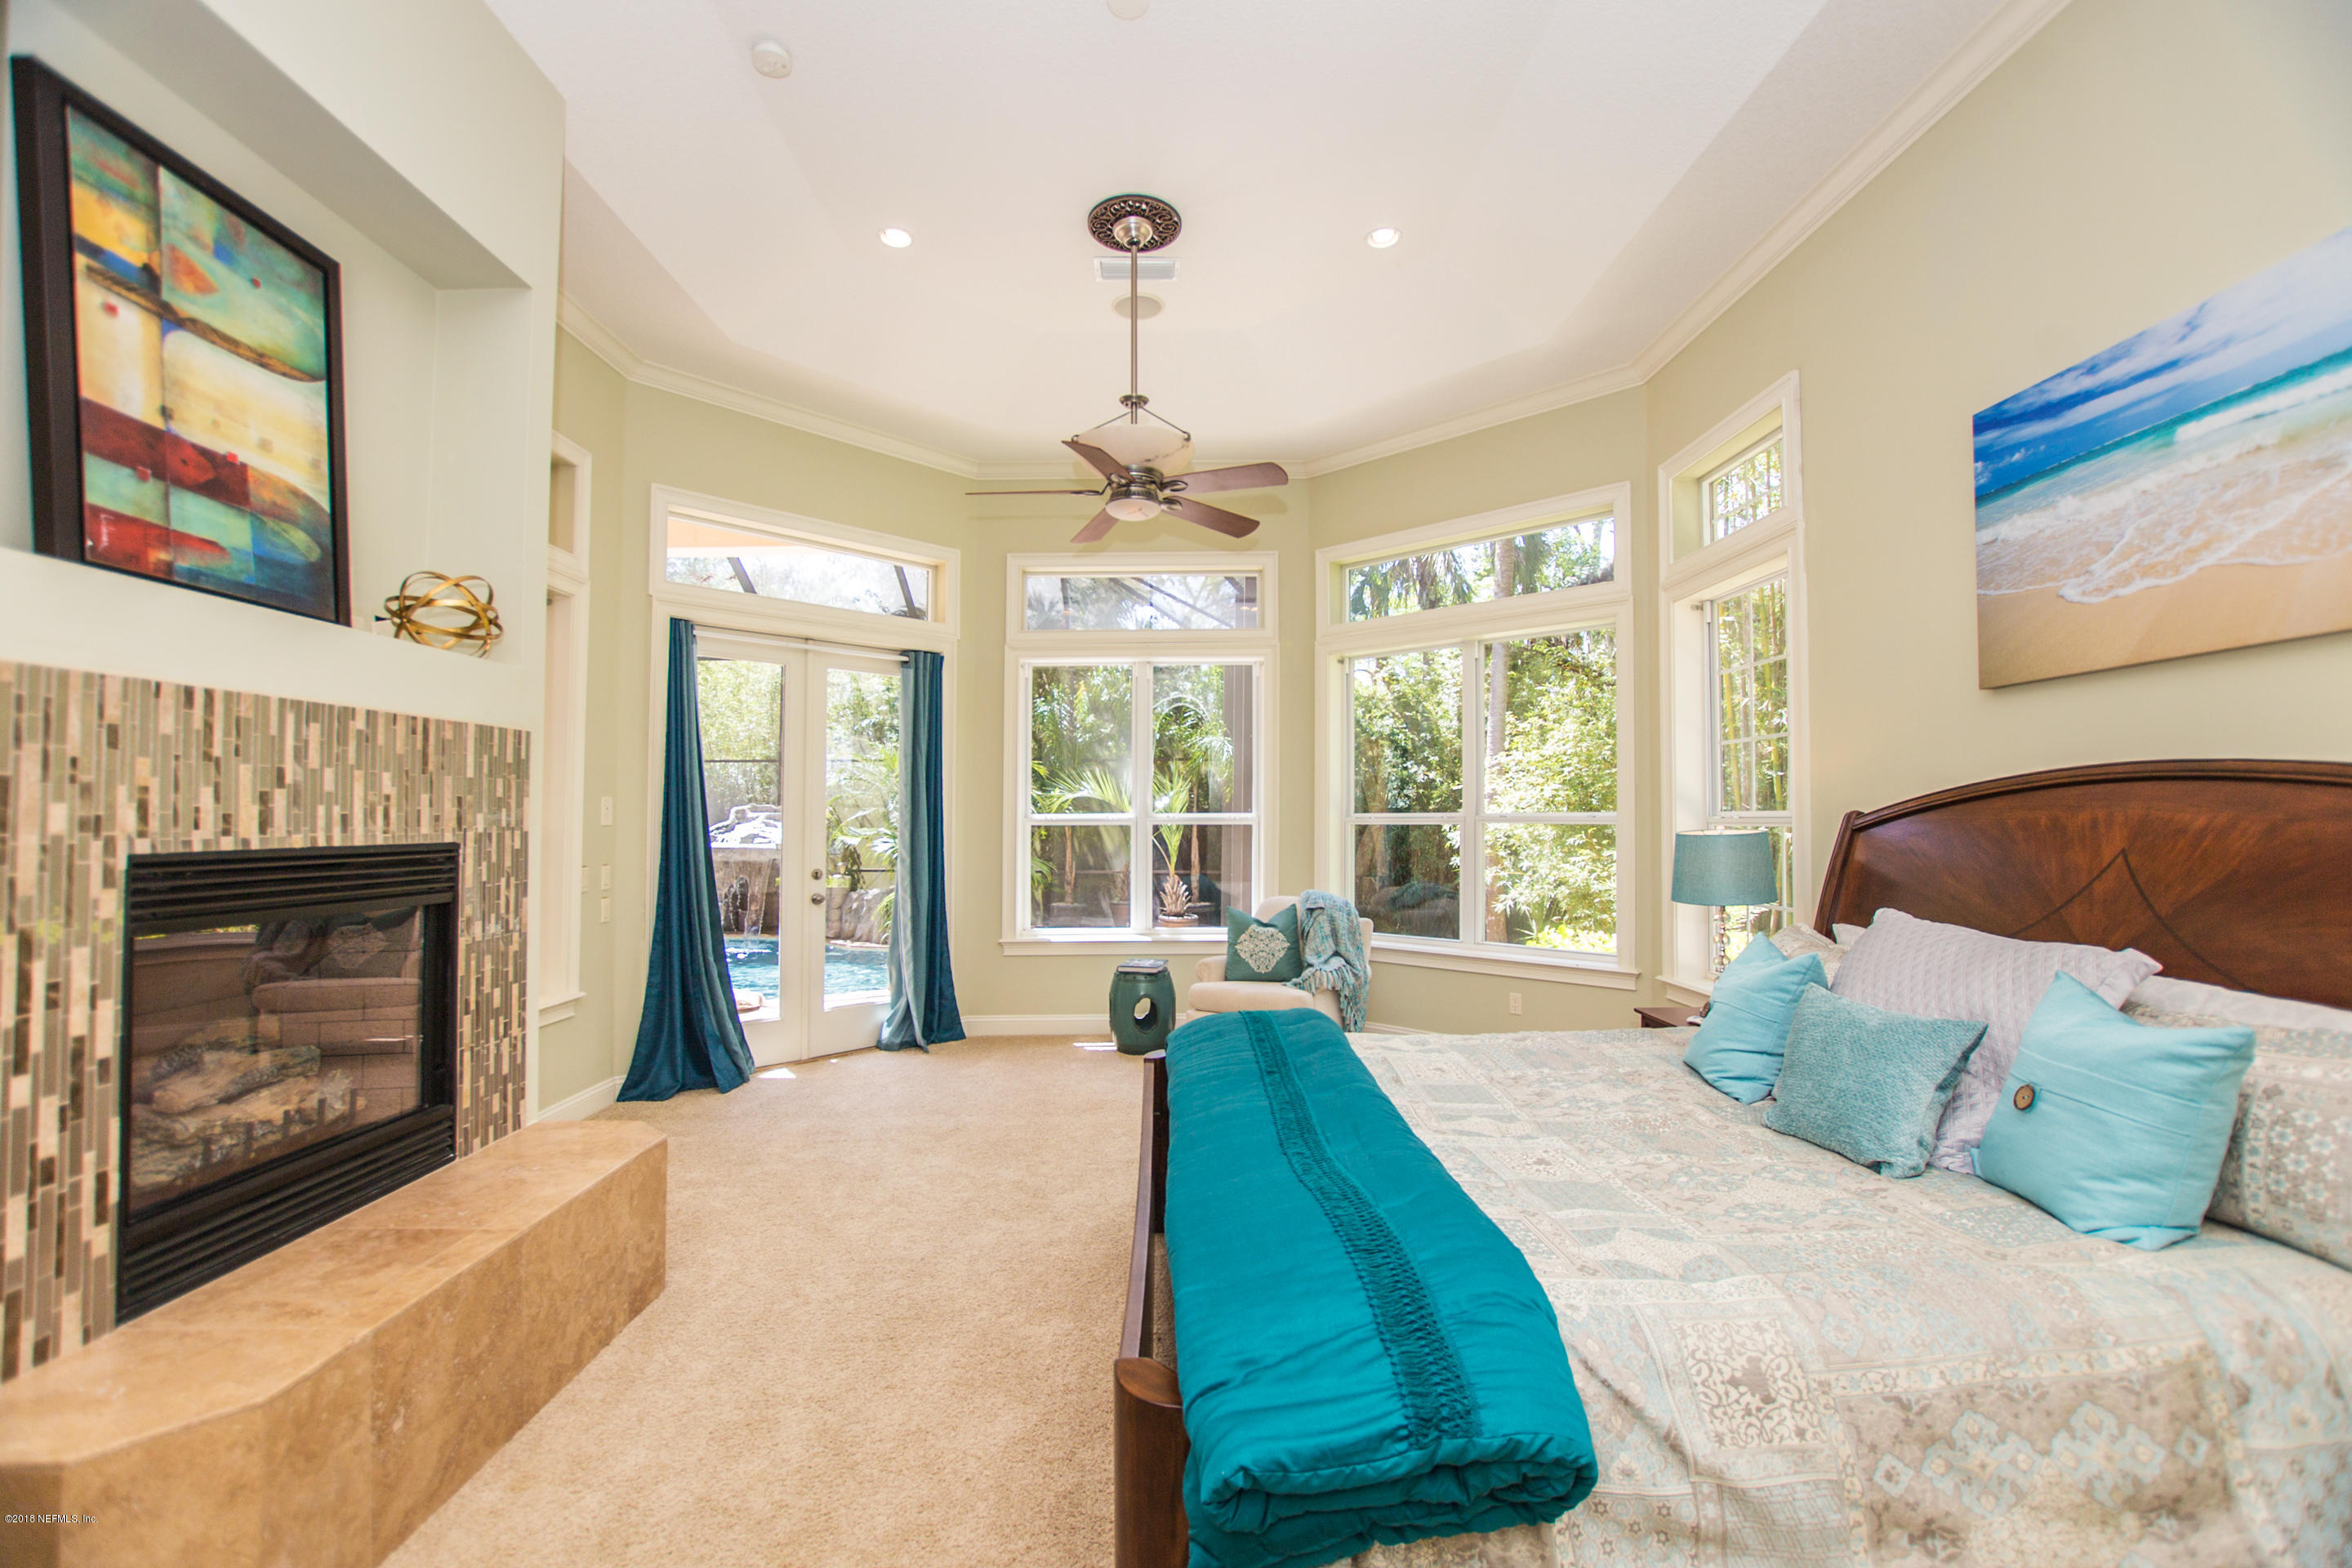 133 HARBOURMASTER, PONTE VEDRA BEACH, FLORIDA 32082, 5 Bedrooms Bedrooms, ,5 BathroomsBathrooms,Residential - single family,For sale,HARBOURMASTER,960595